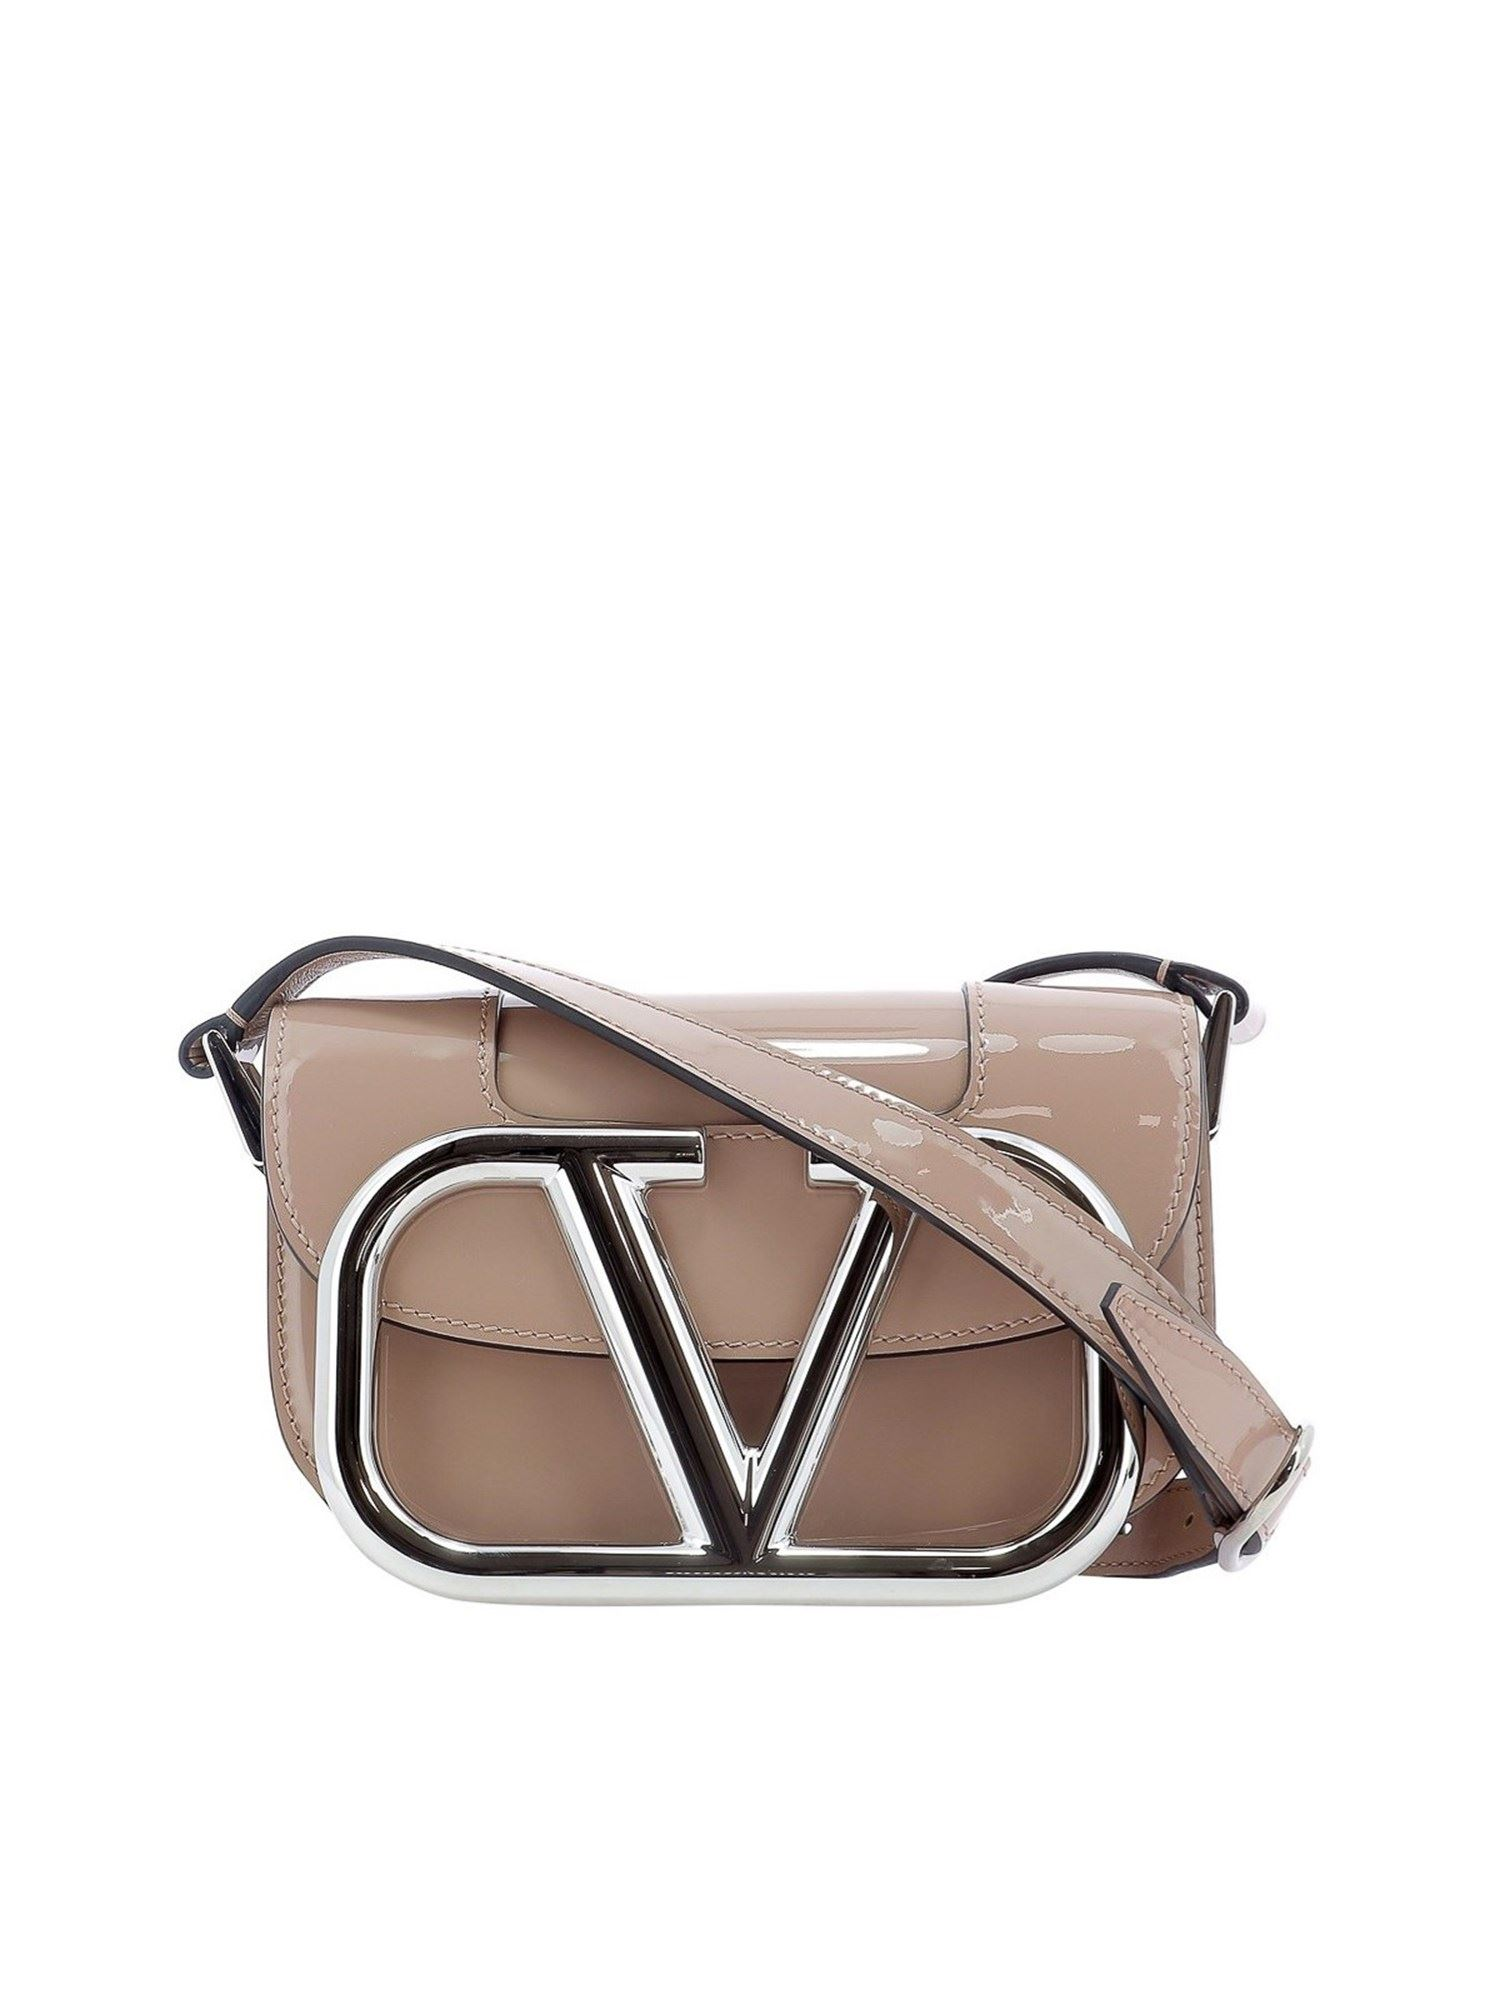 VALENTINO SUPERVEE BAG IN PINK